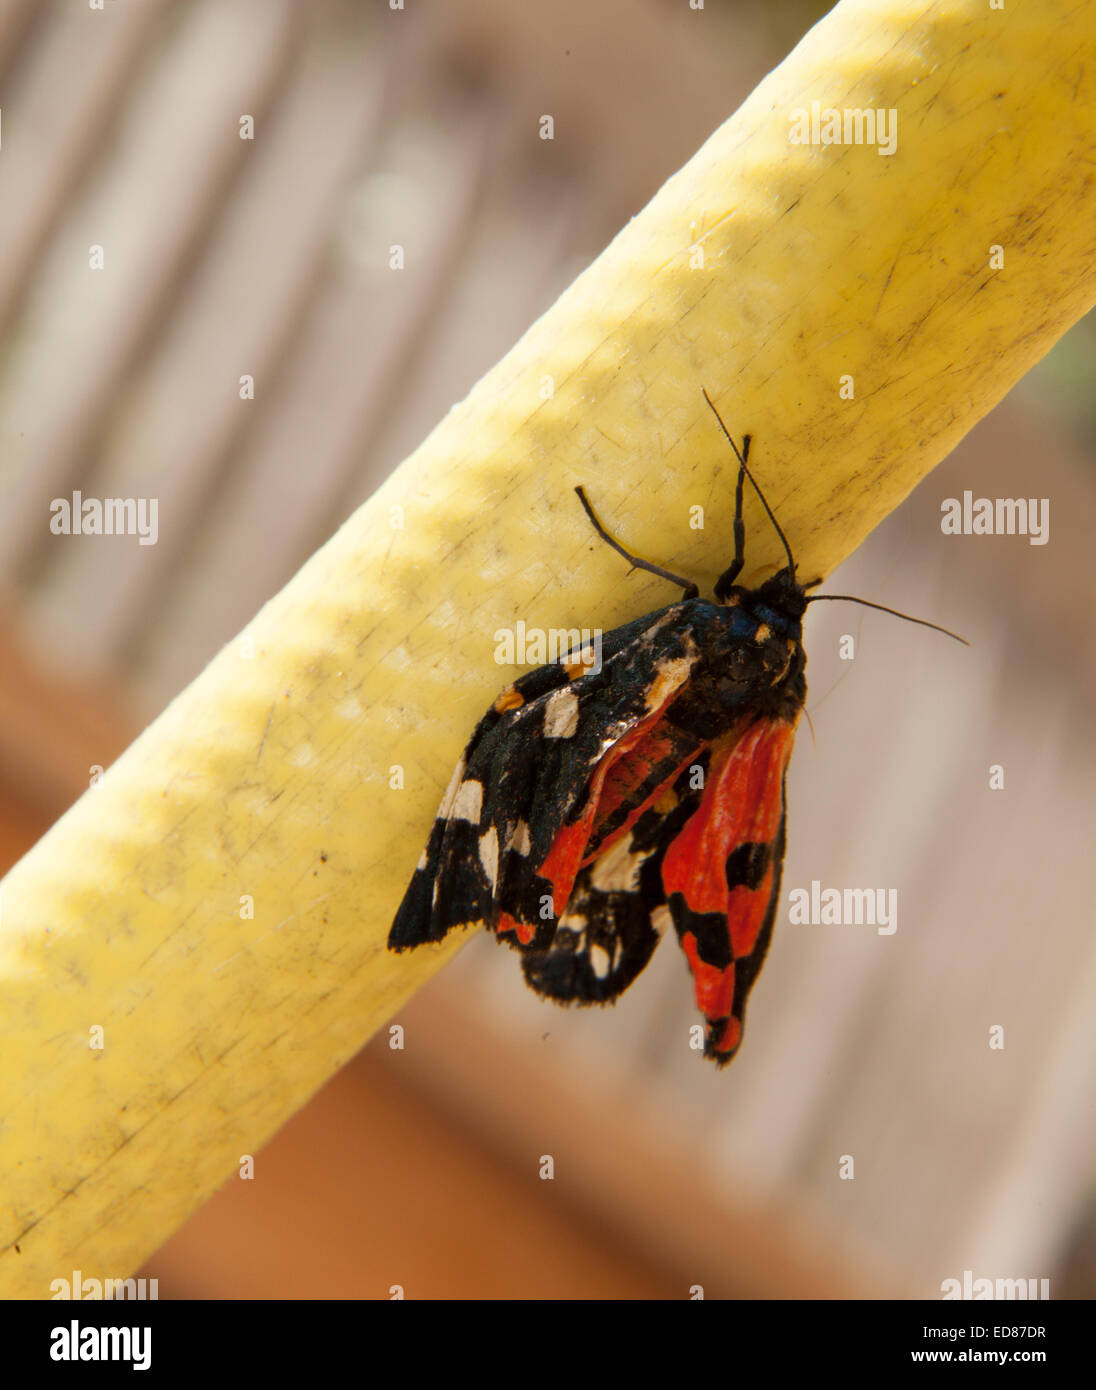 A scarlet tiger moth dries his wings whilstclinging to a garden hosepipe - Stock Image